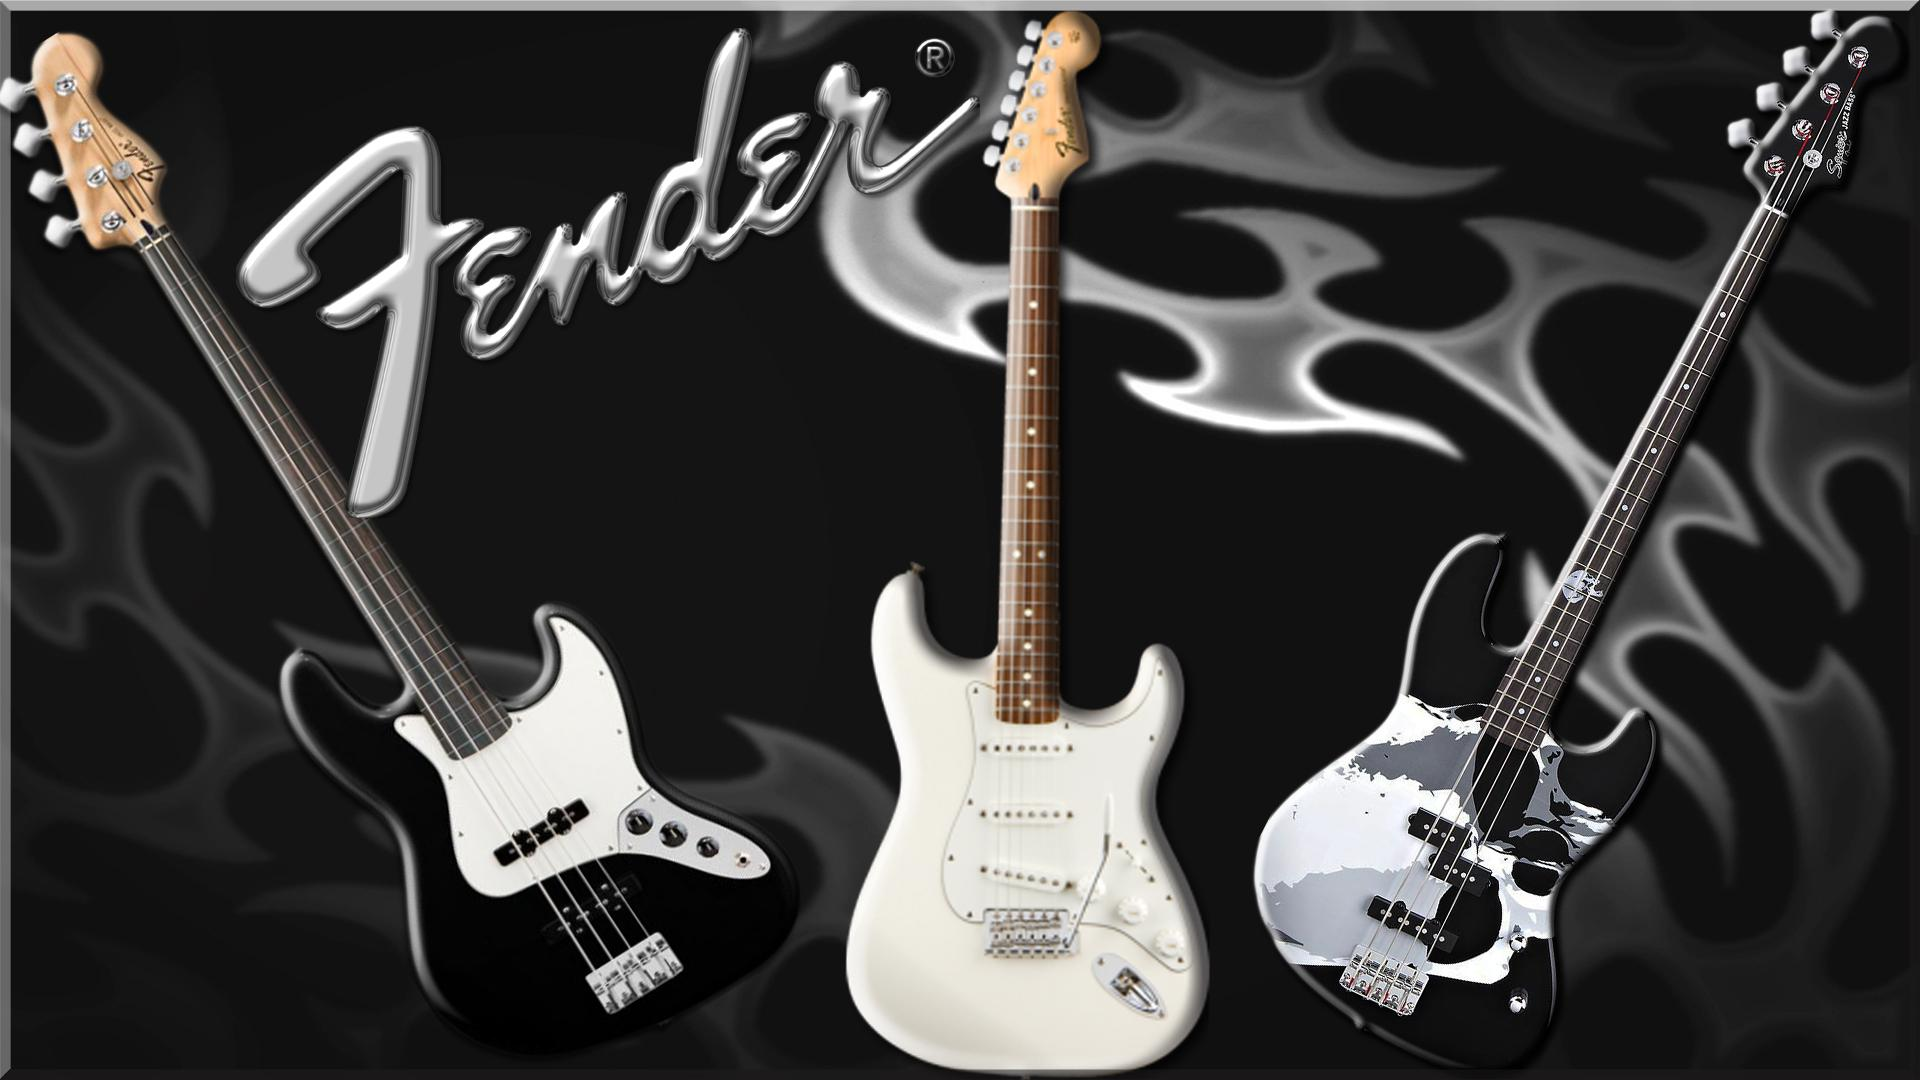 Hd Bass Guitar Wallpaper: Fender Jazz Bass Wallpaper